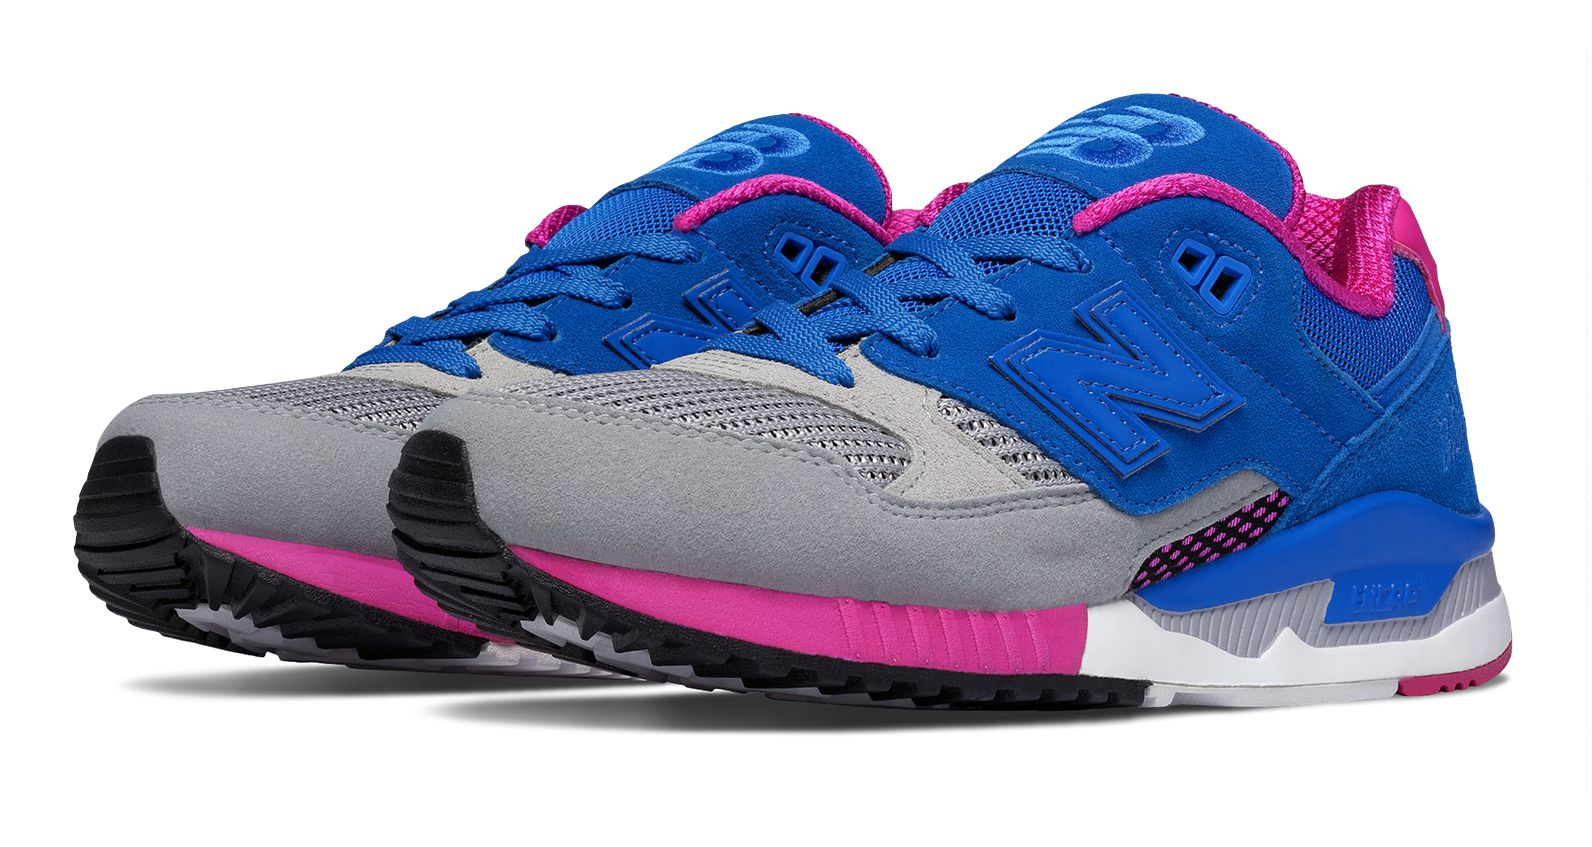 New Balance : 530 Bionic Boom : Women's Footwear Outlet : W530RTC